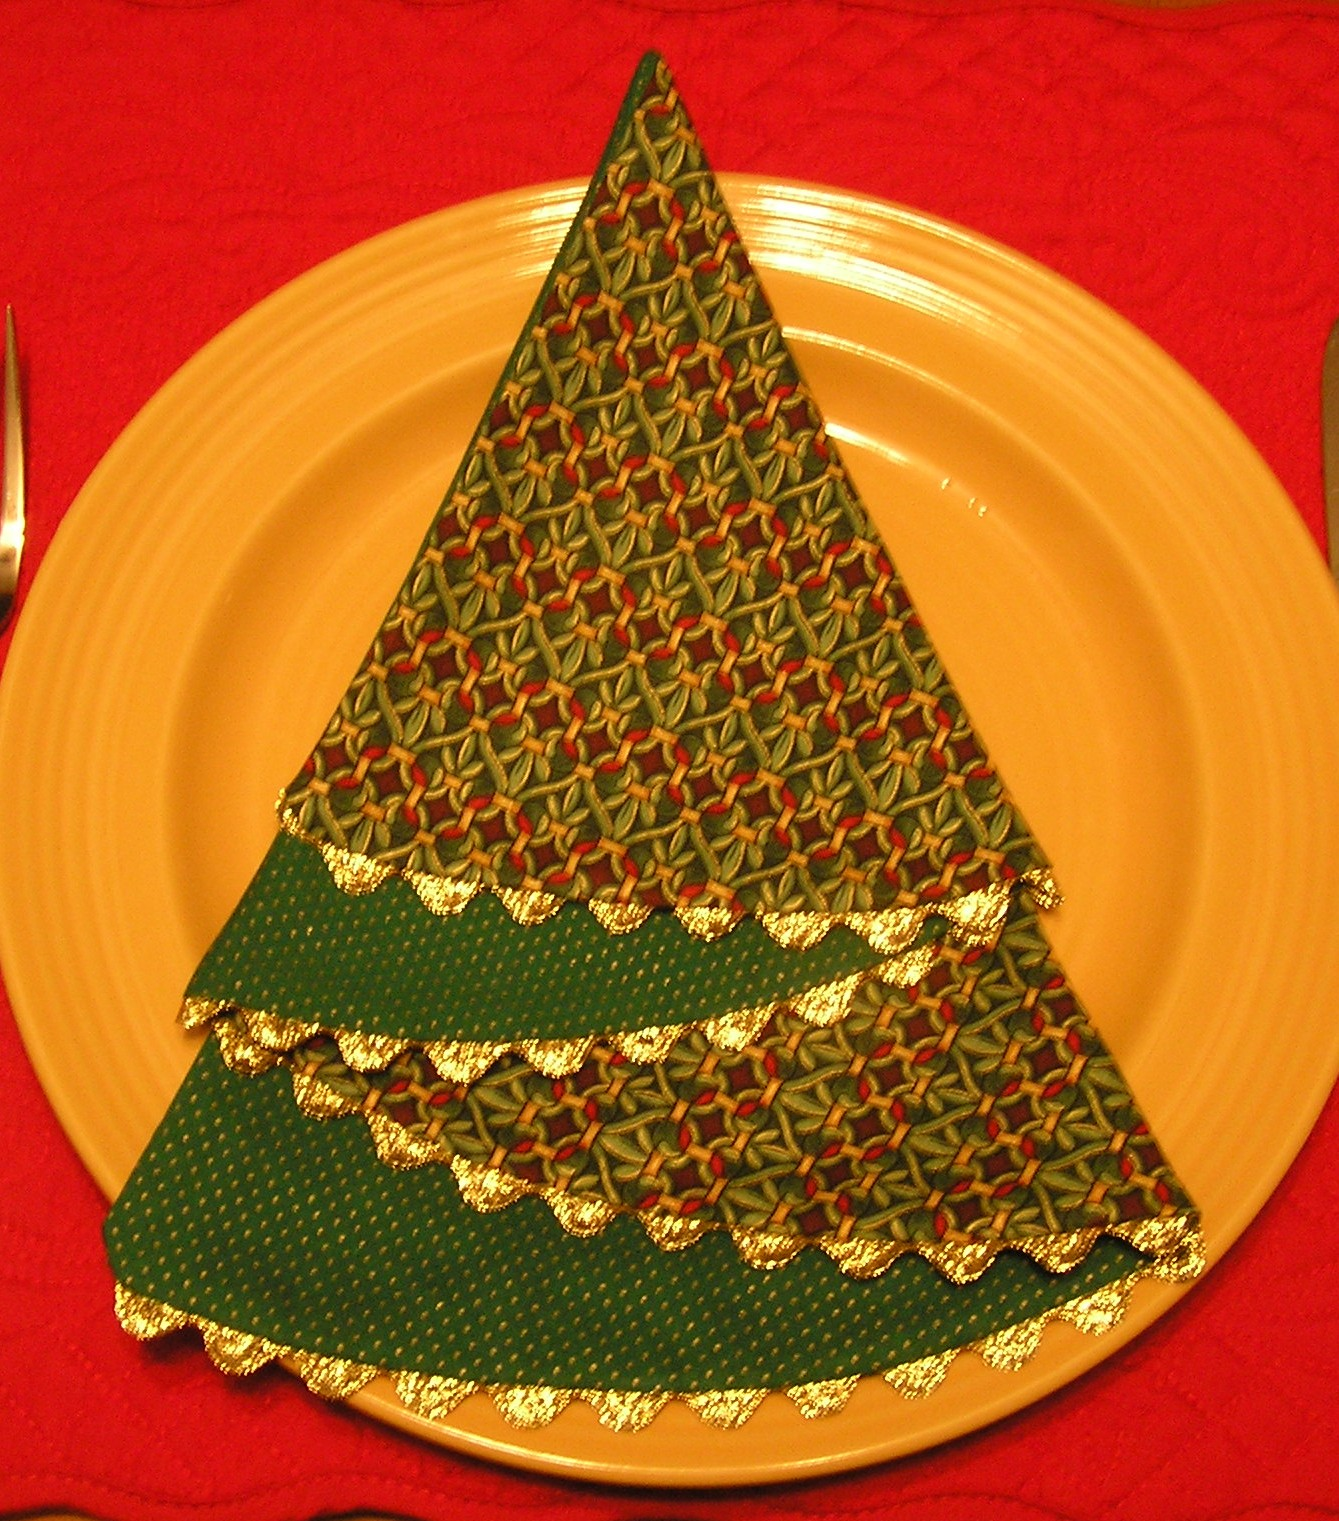 Free Christmas Sewing Projects http://aminute.seesaa.net/article/158106009.html